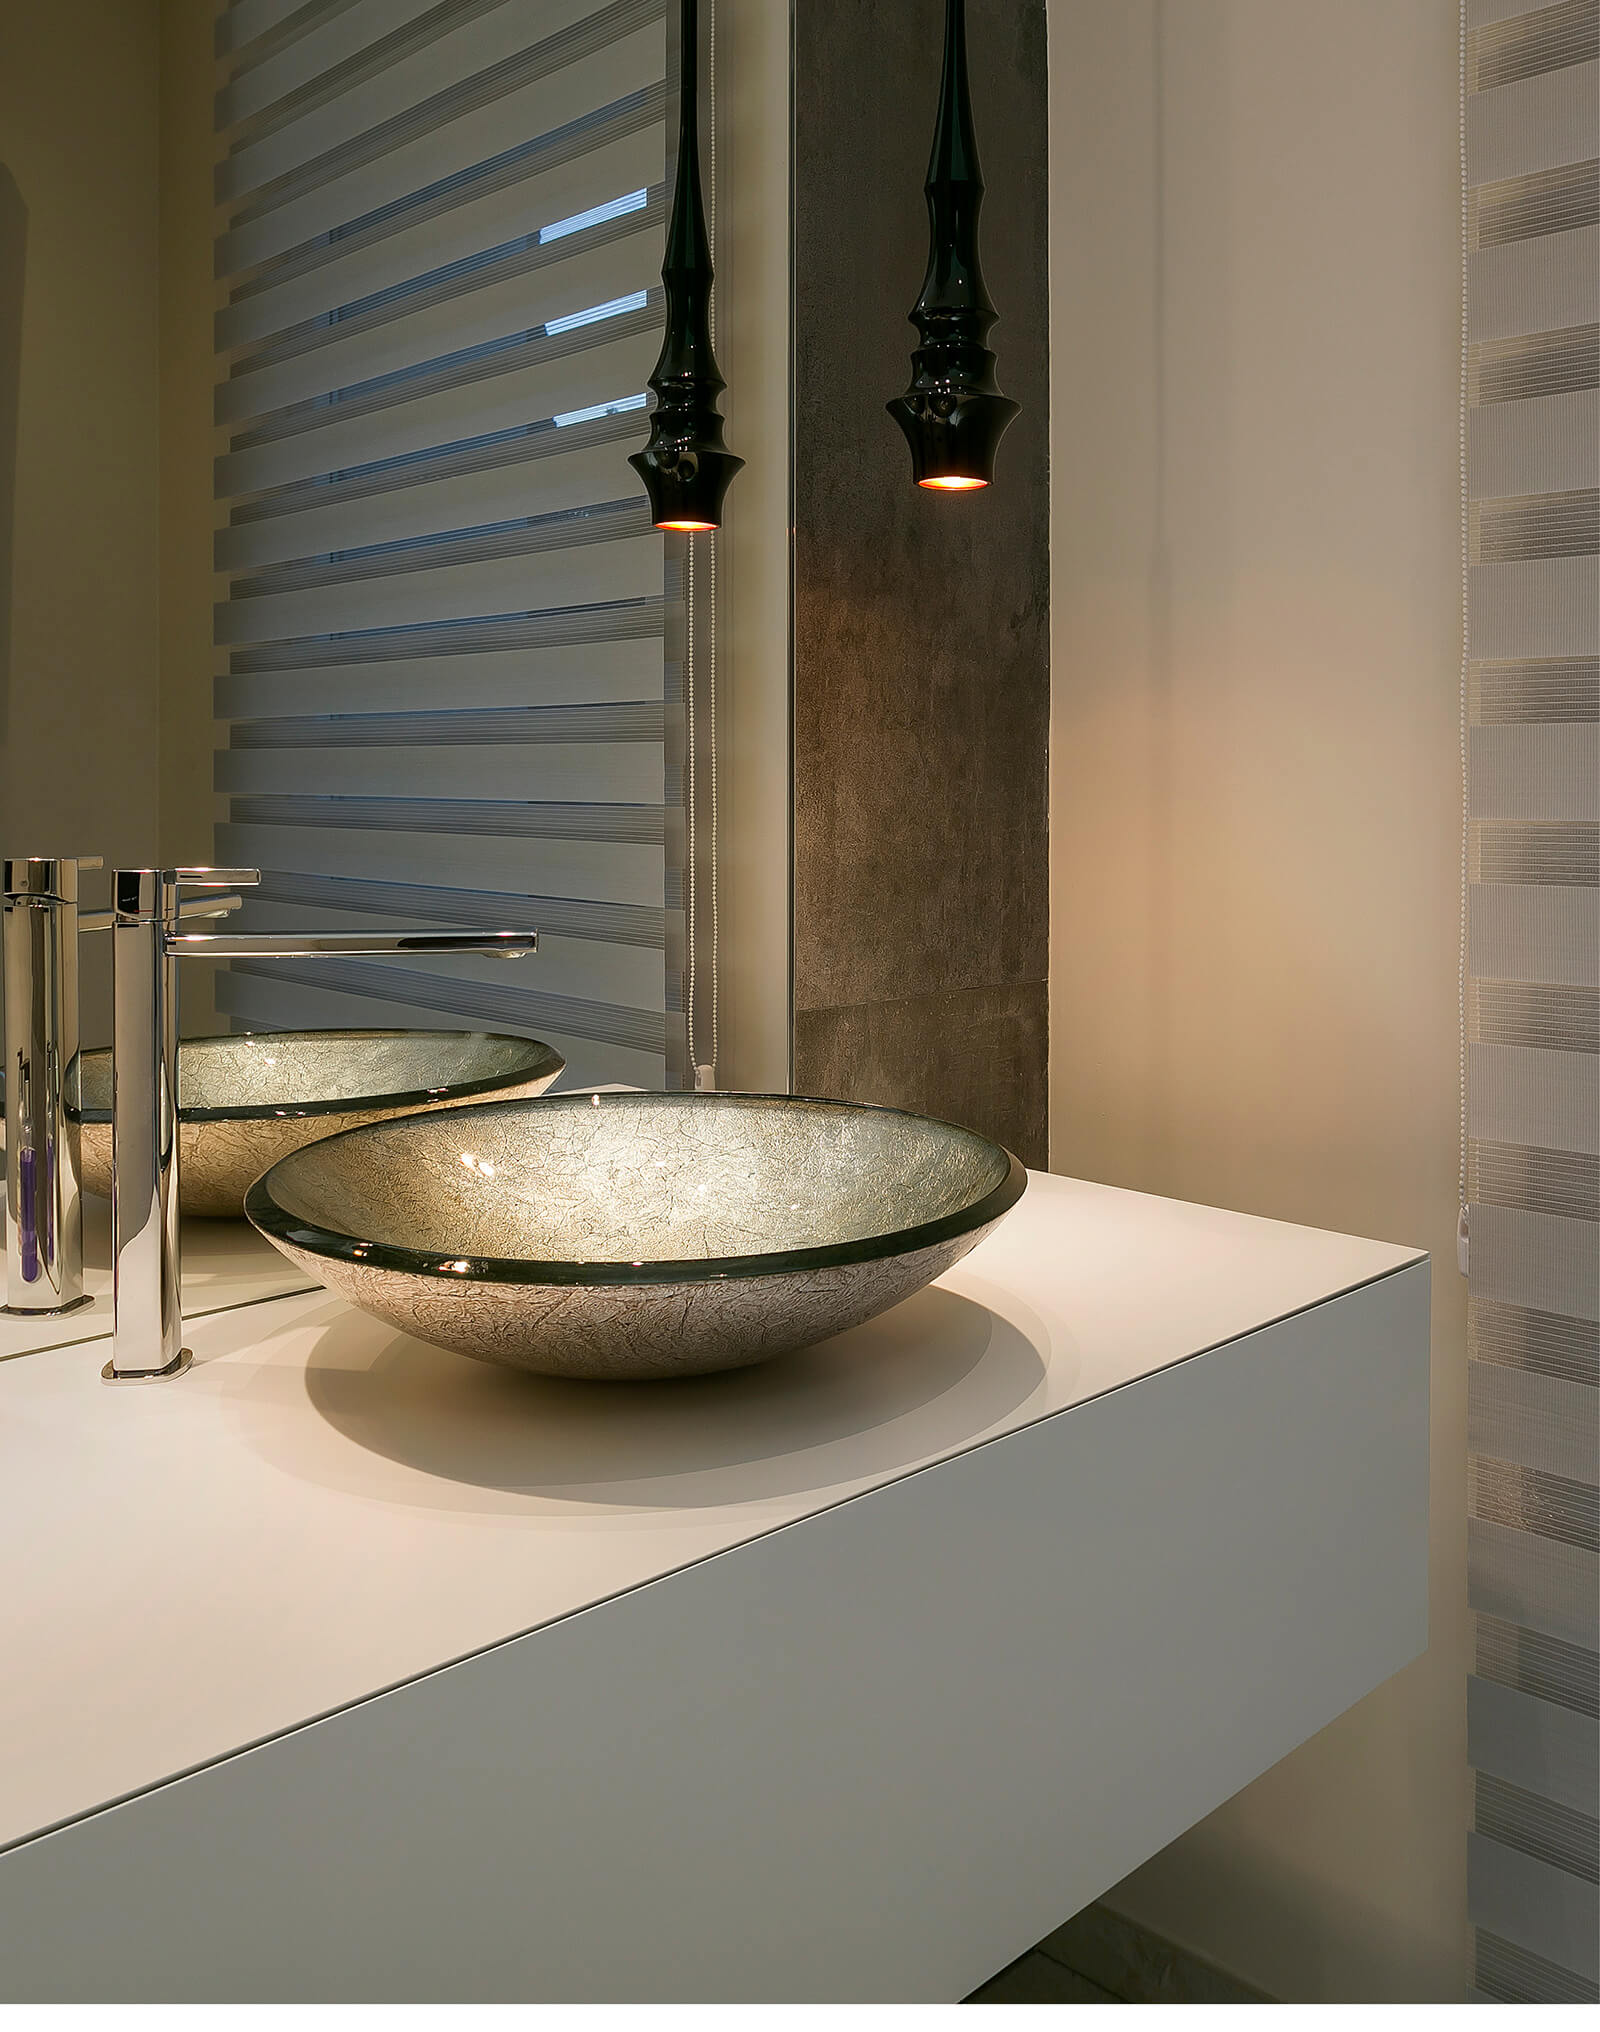 Luxurious New Build Villa sink